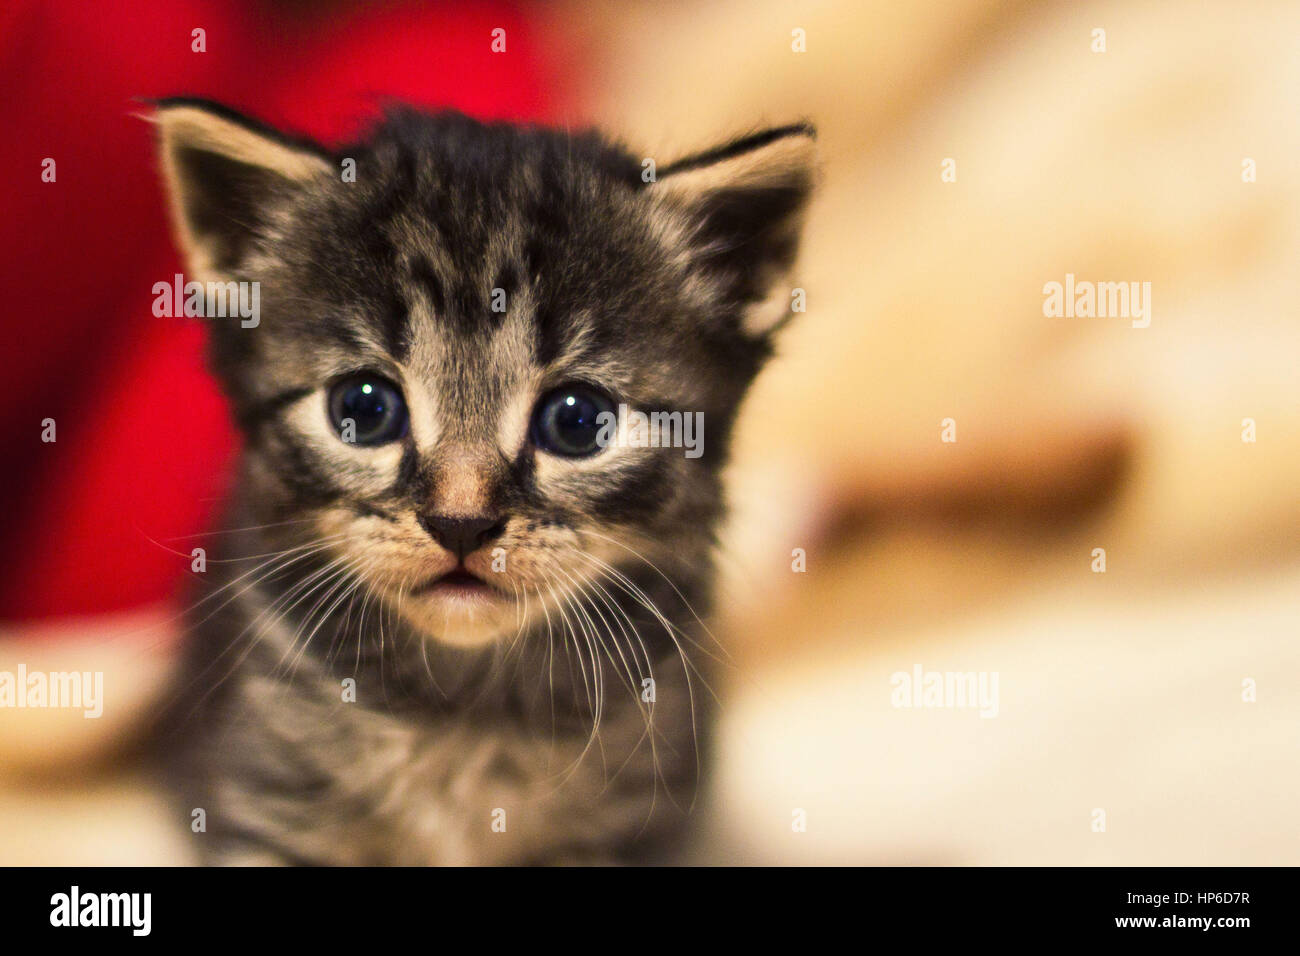 Portrait of a small cute kitty - Stock Image